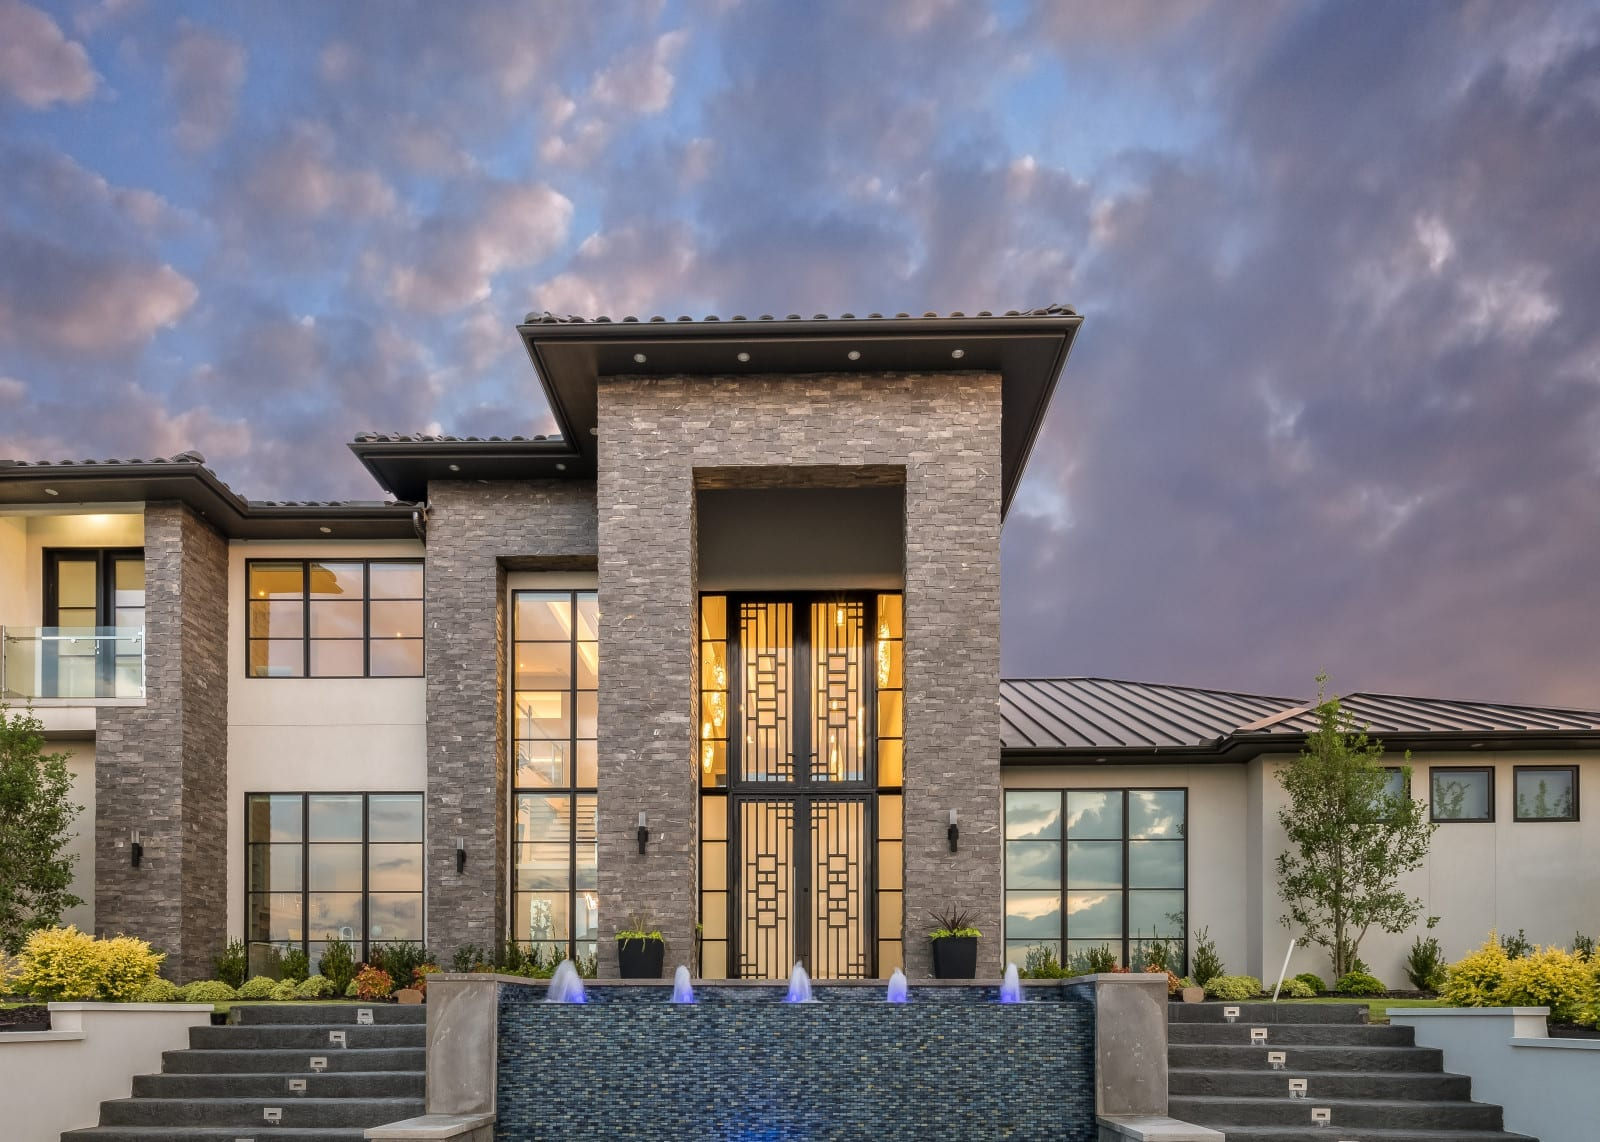 past project home design 33 - Millennial Design + Build, Home Builders in Dallas Texas, modern style homes, and custom home builders in DFW